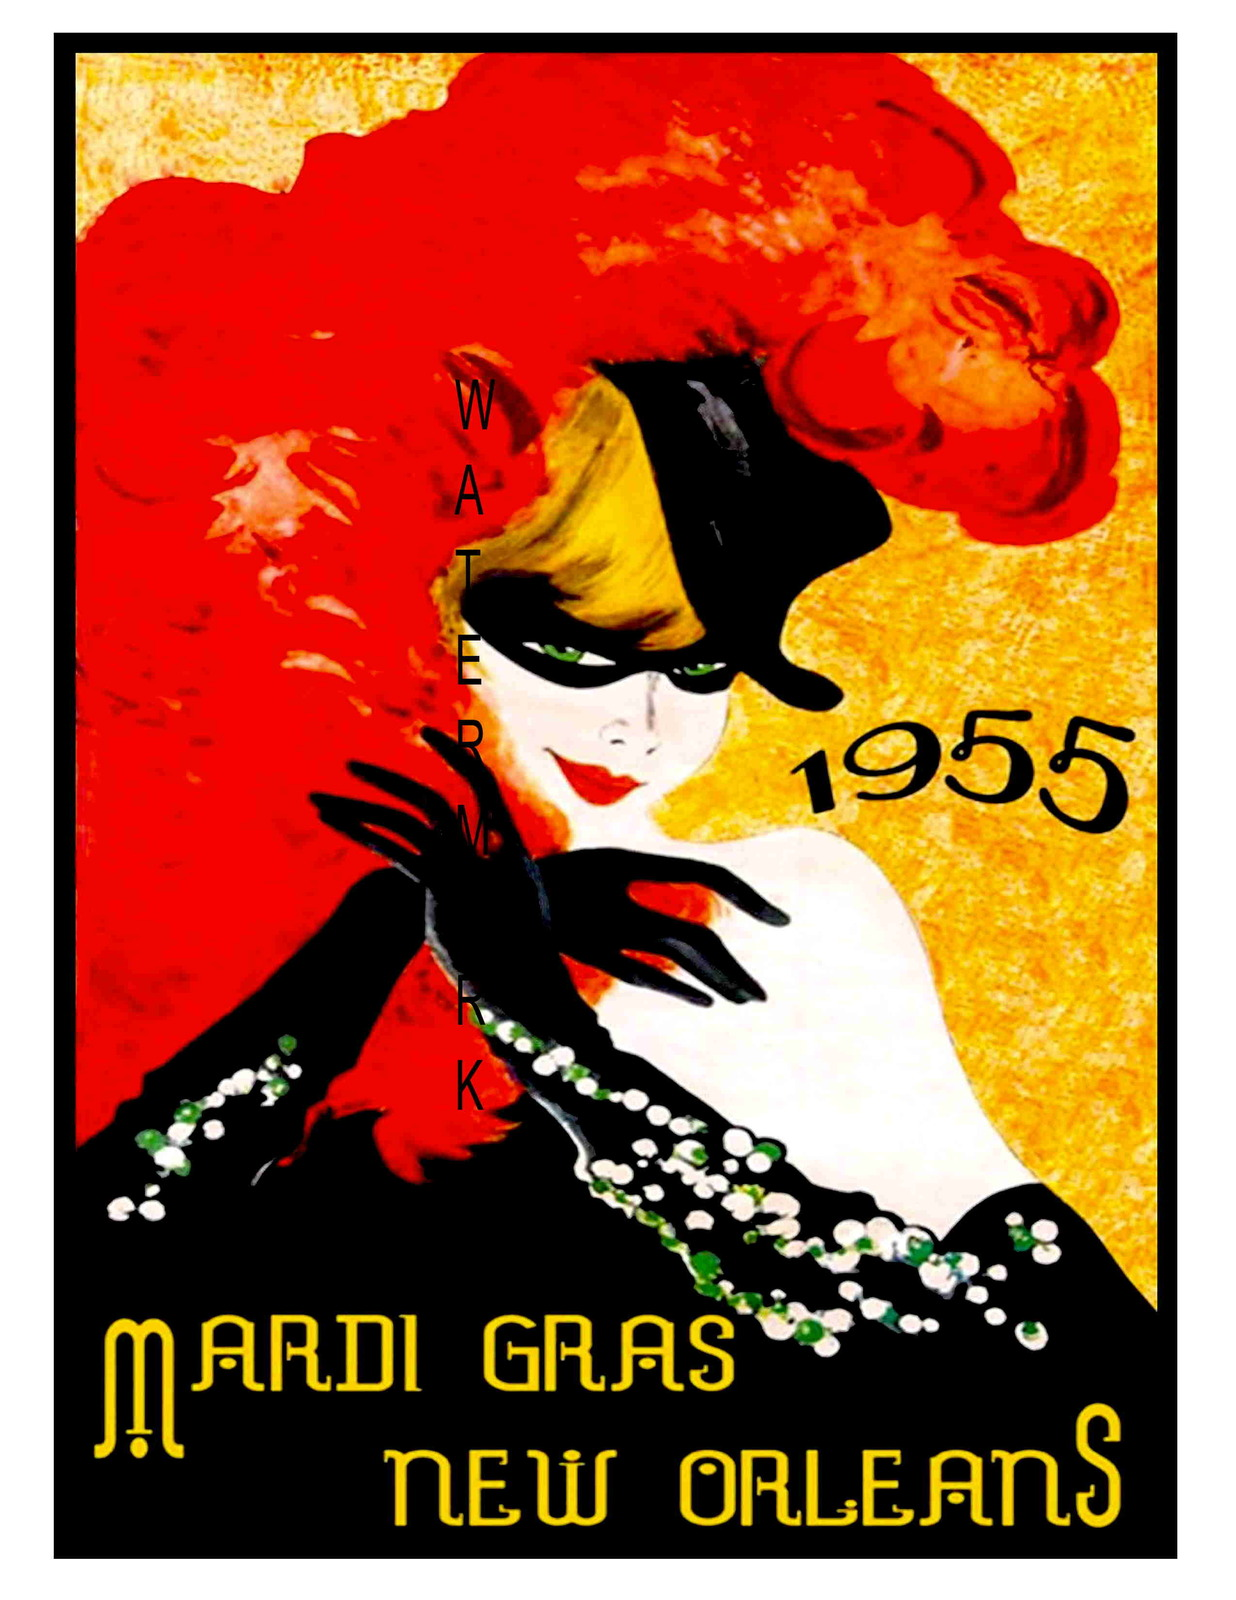 New Orleans Vintage 1955 Mardi Gras 13 x 10 in Advertising Giclee CANVAS Print